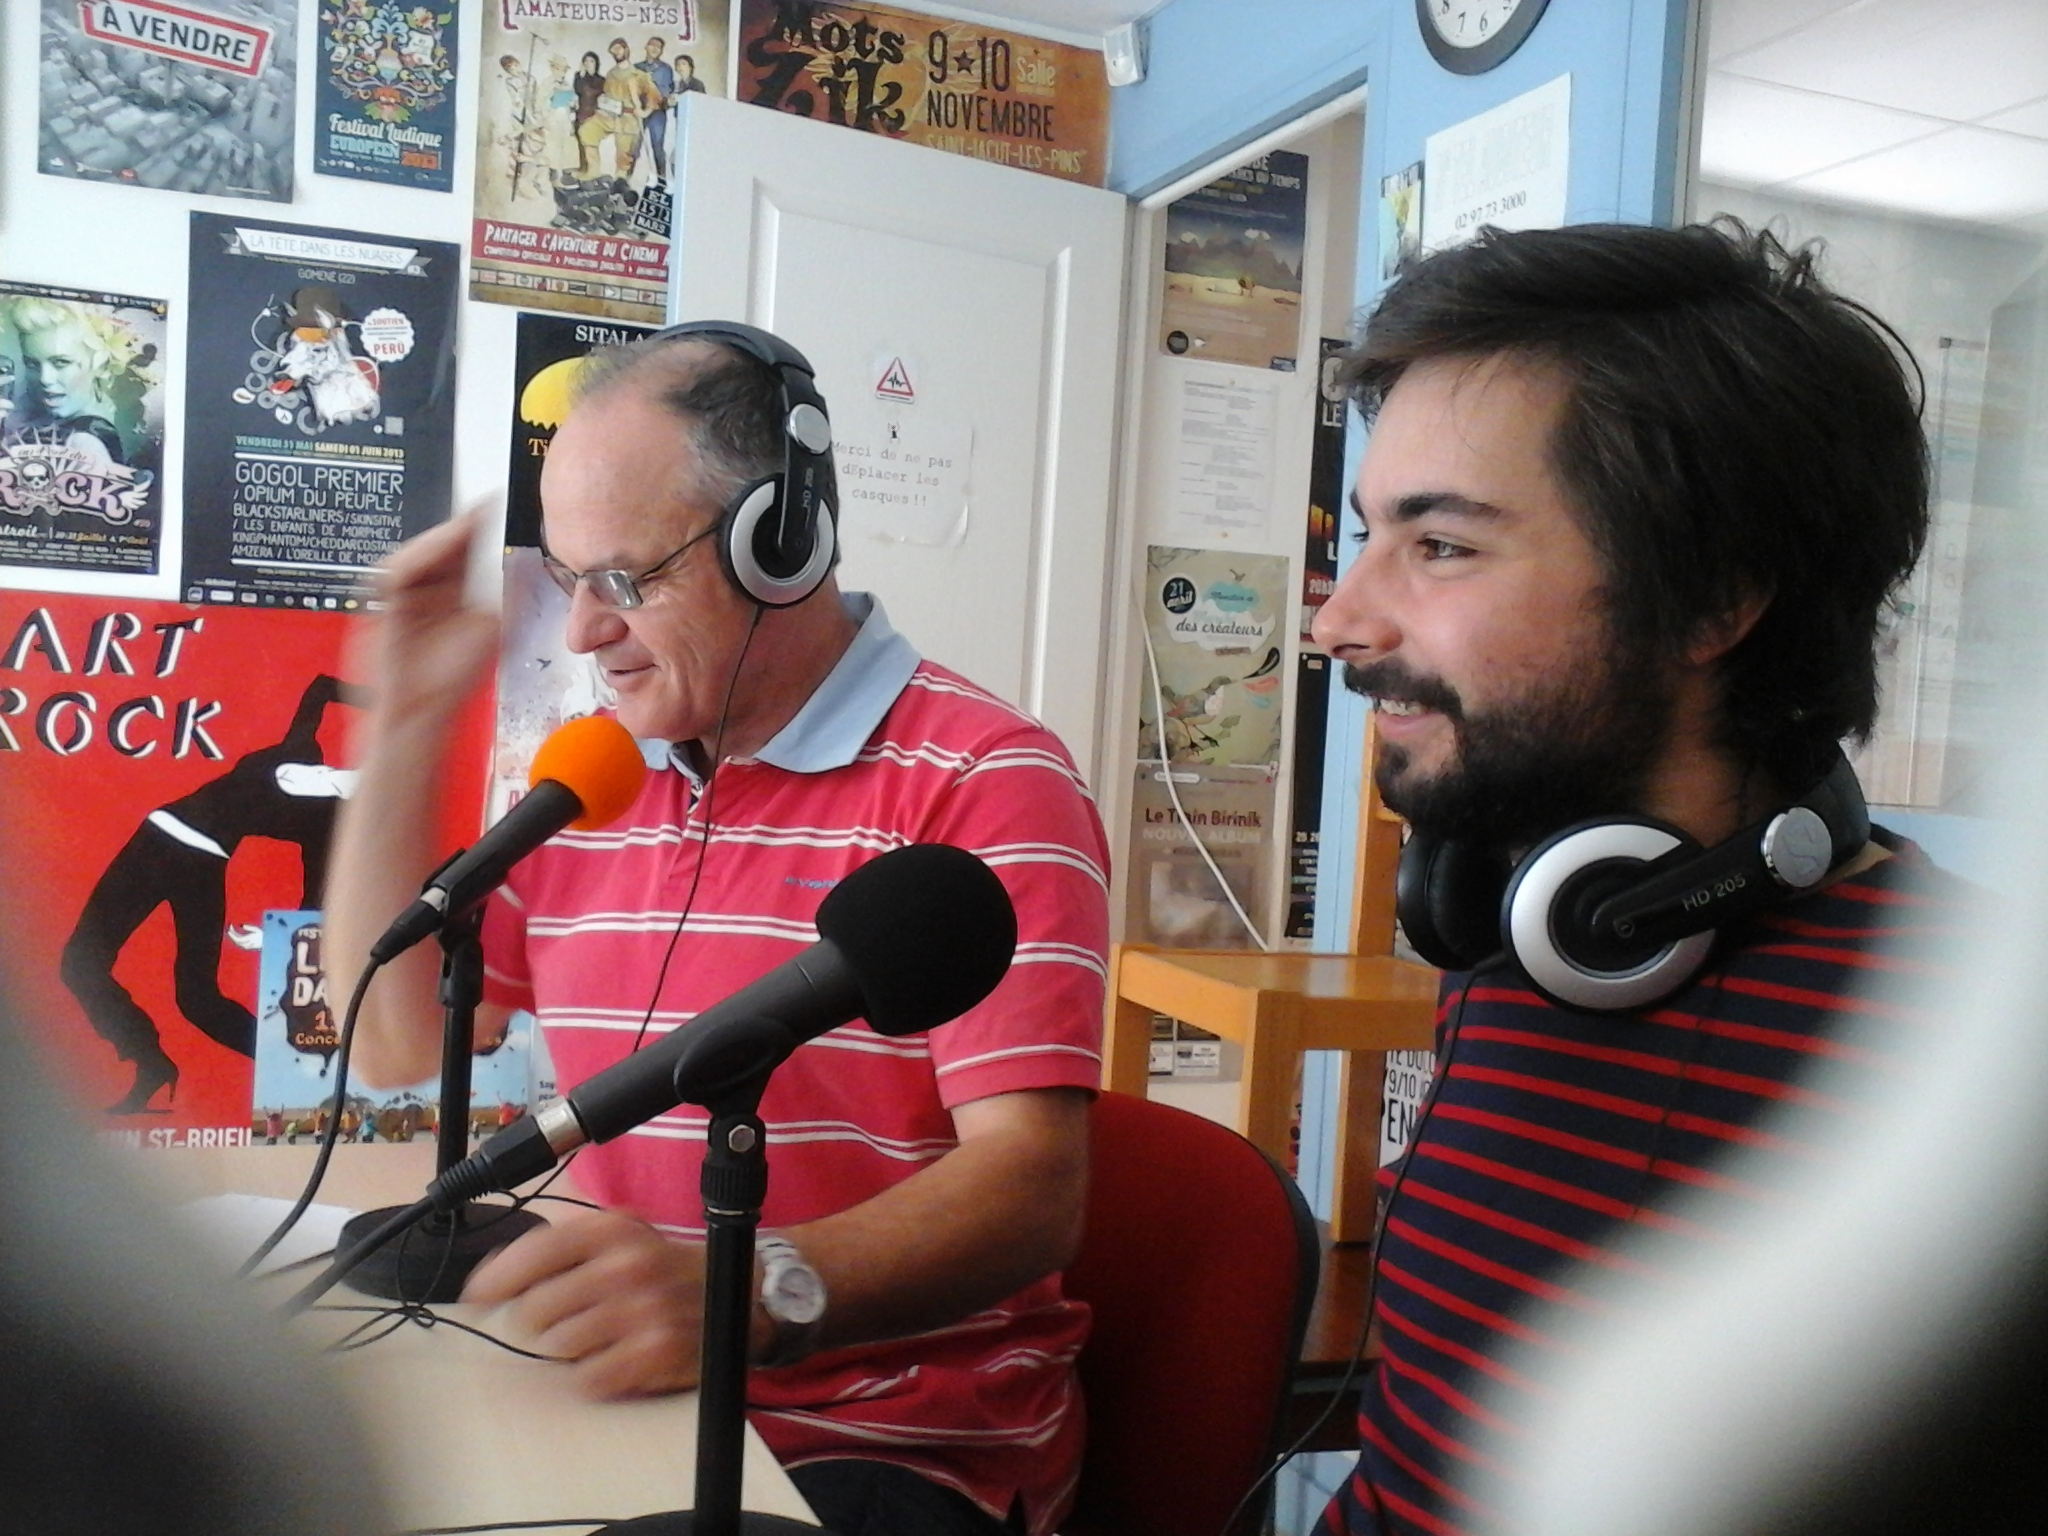 Covoiturage à Redon Emission Plum FM